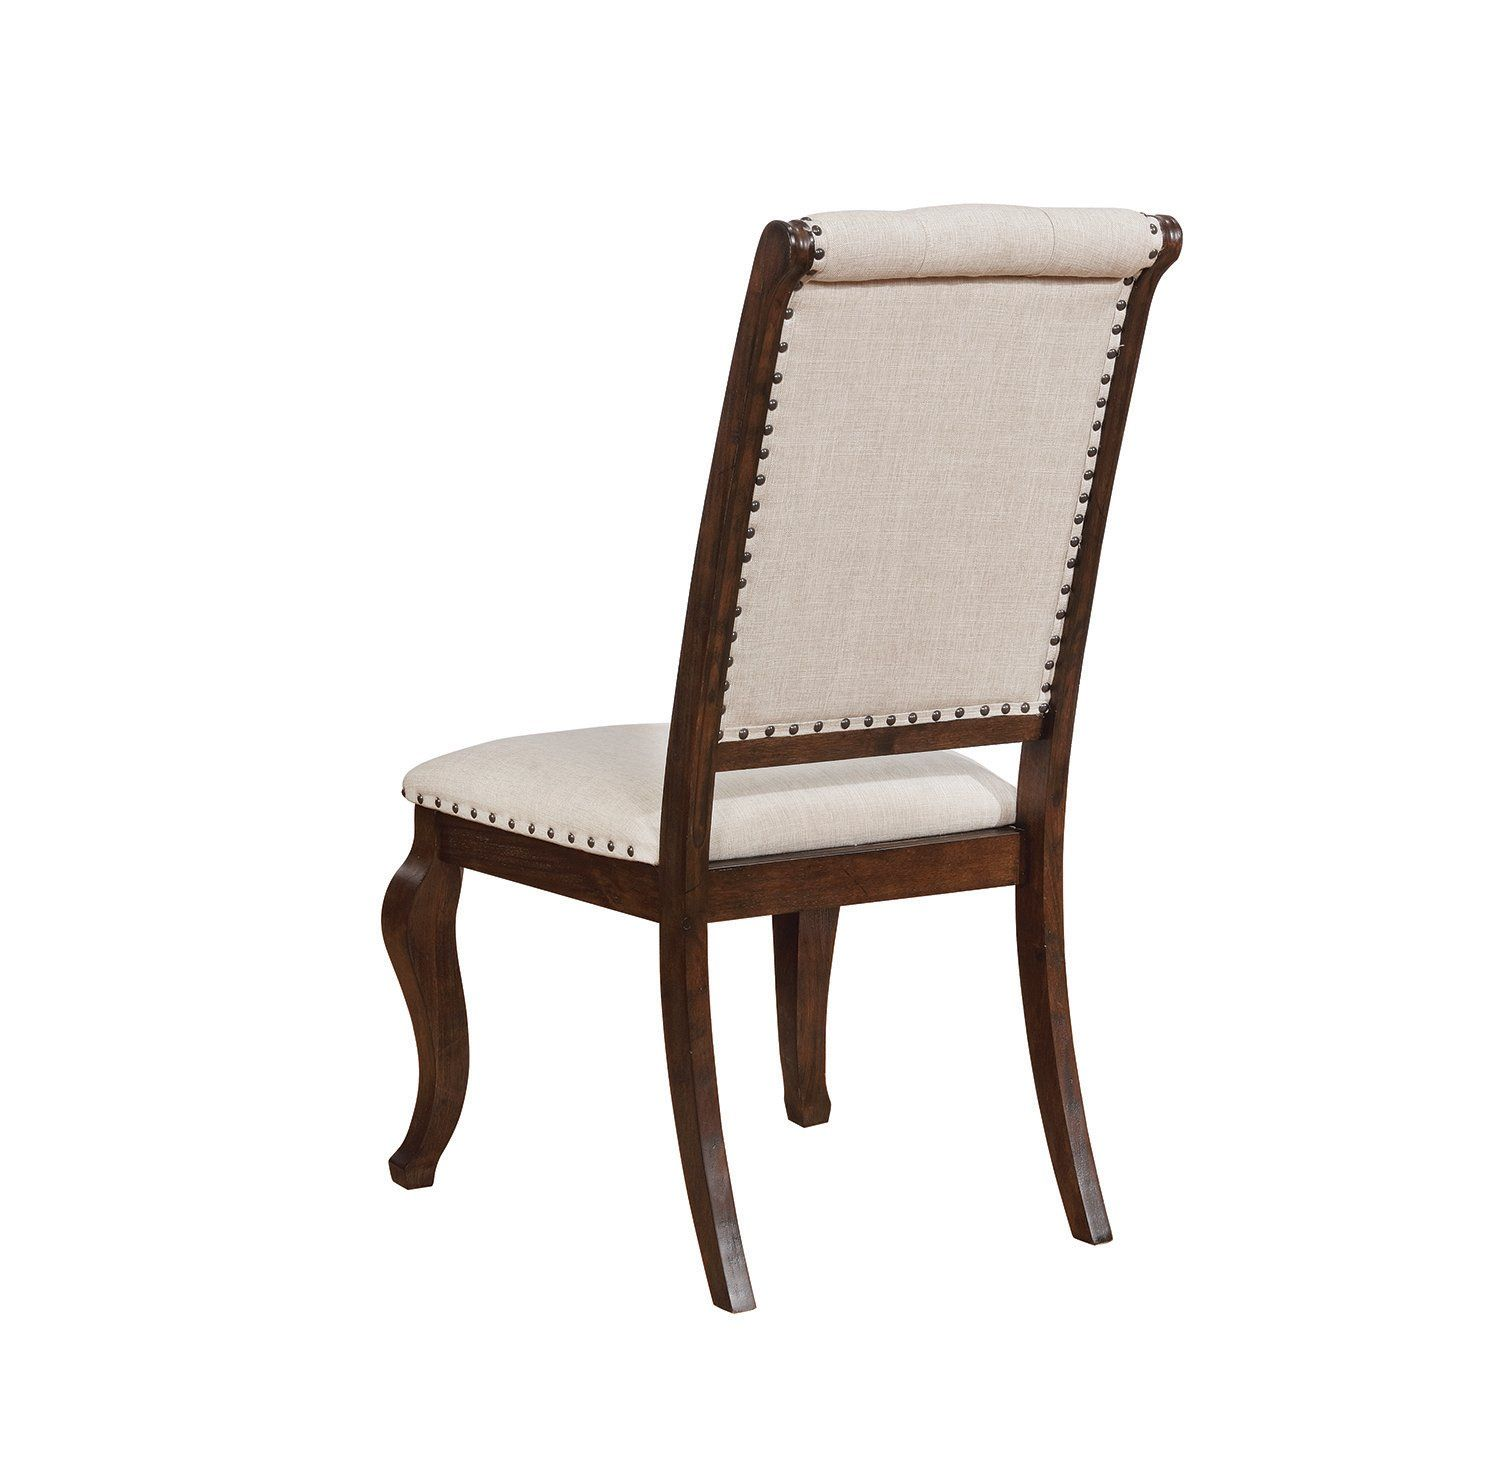 Fantastic Coaster Glen Cove Cream Fabric Antique Java Leg Side Chair Bralicious Painted Fabric Chair Ideas Braliciousco